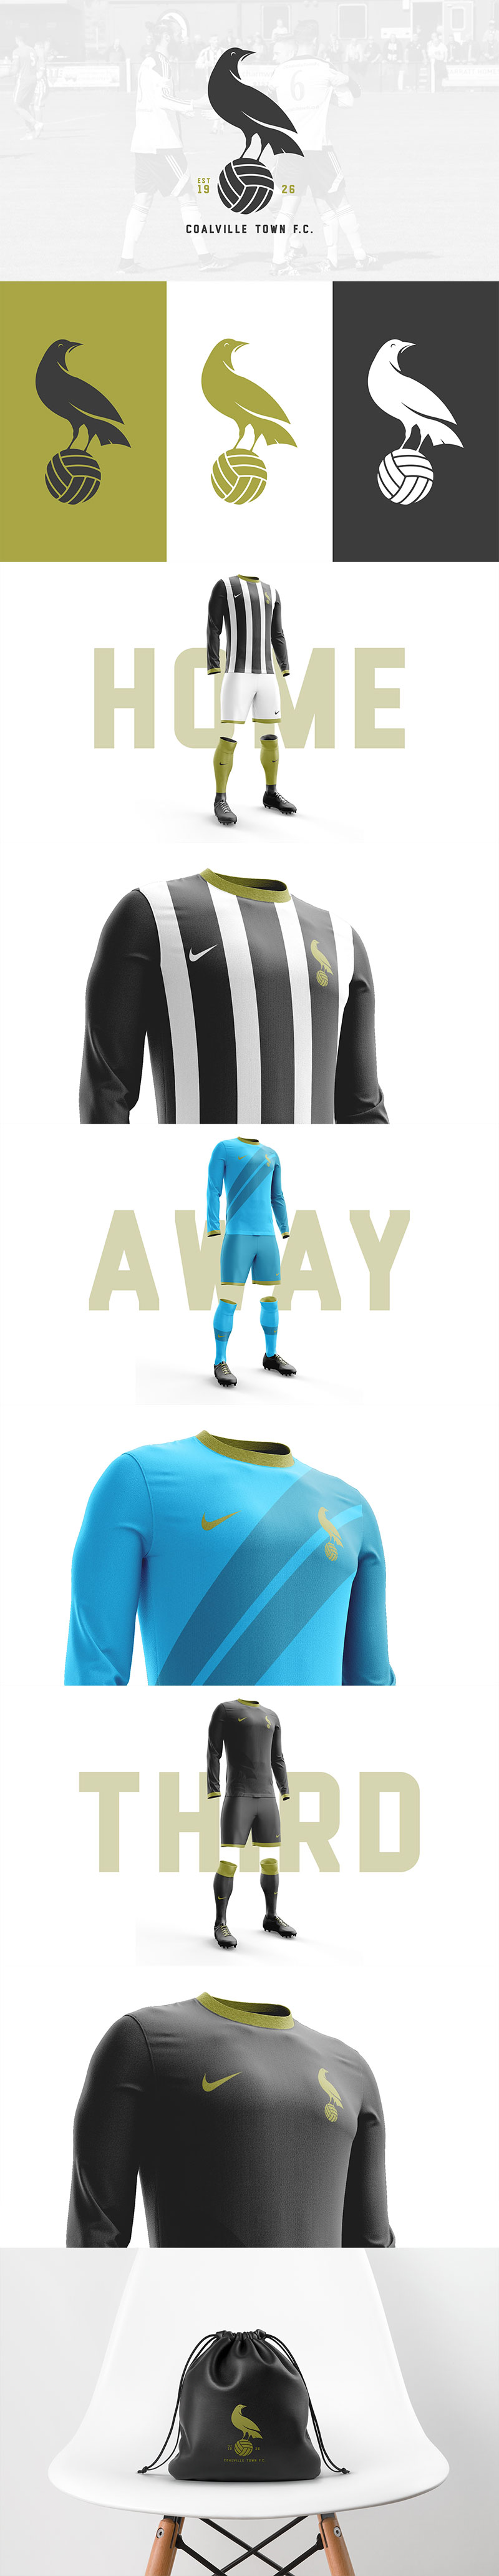 Football Club Brand Designs: Coalville Town F.C. Rebrand by Jamie Kerr